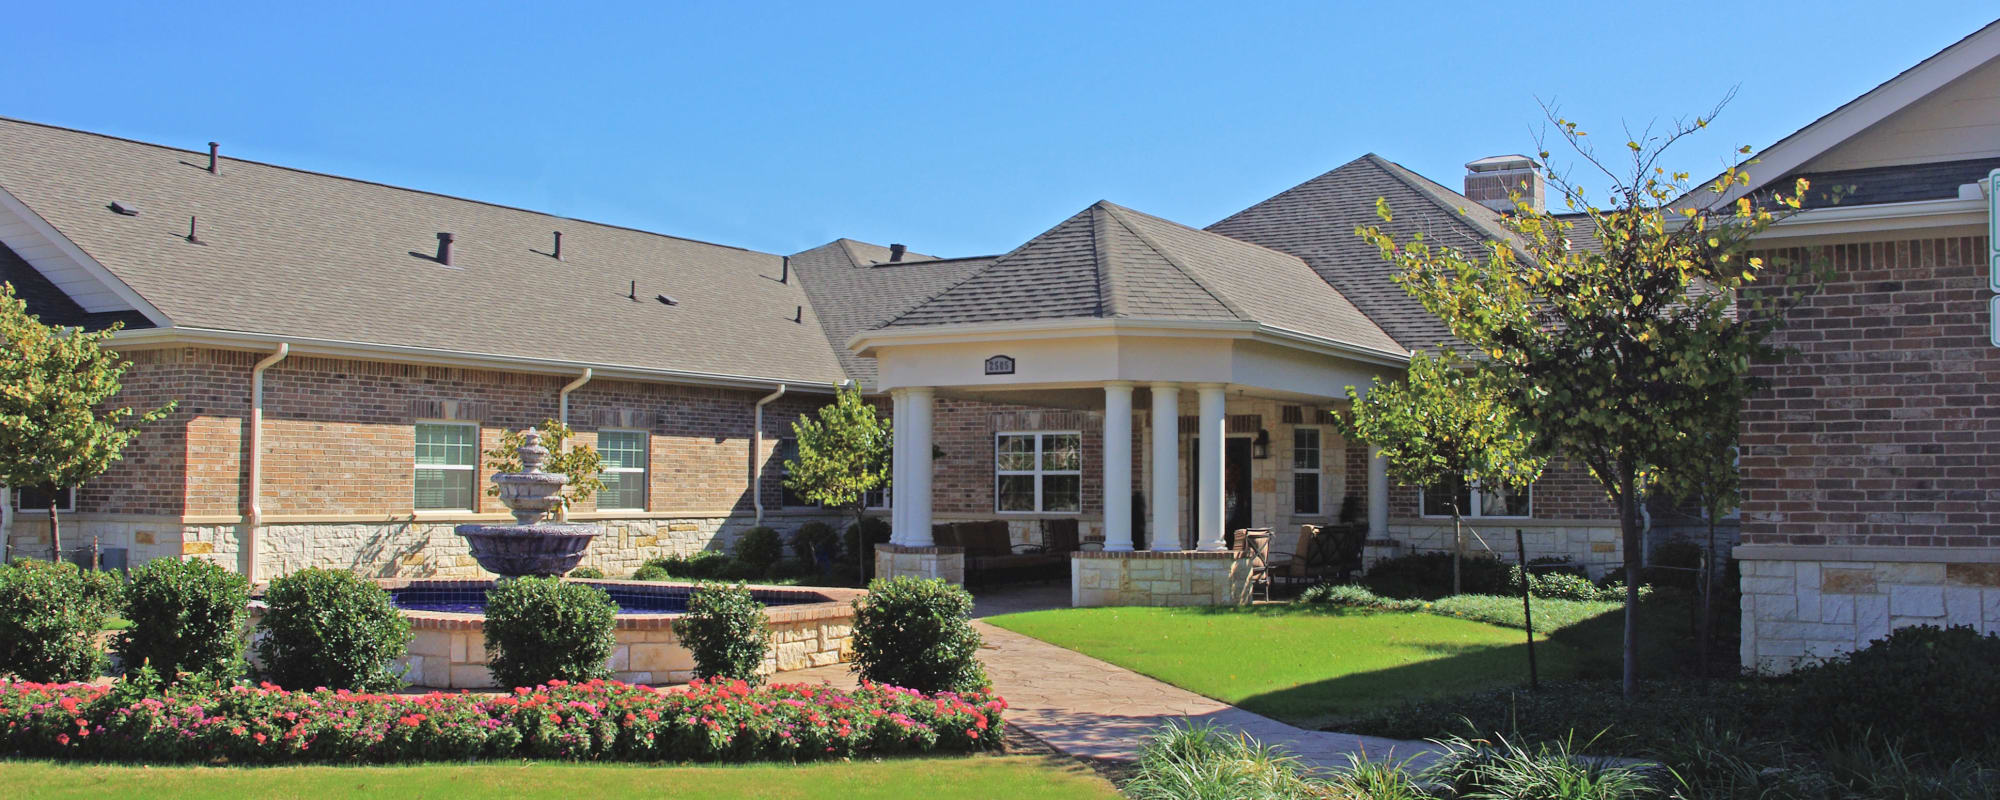 Careers at The Village at Valley Creek in Denton, Texas